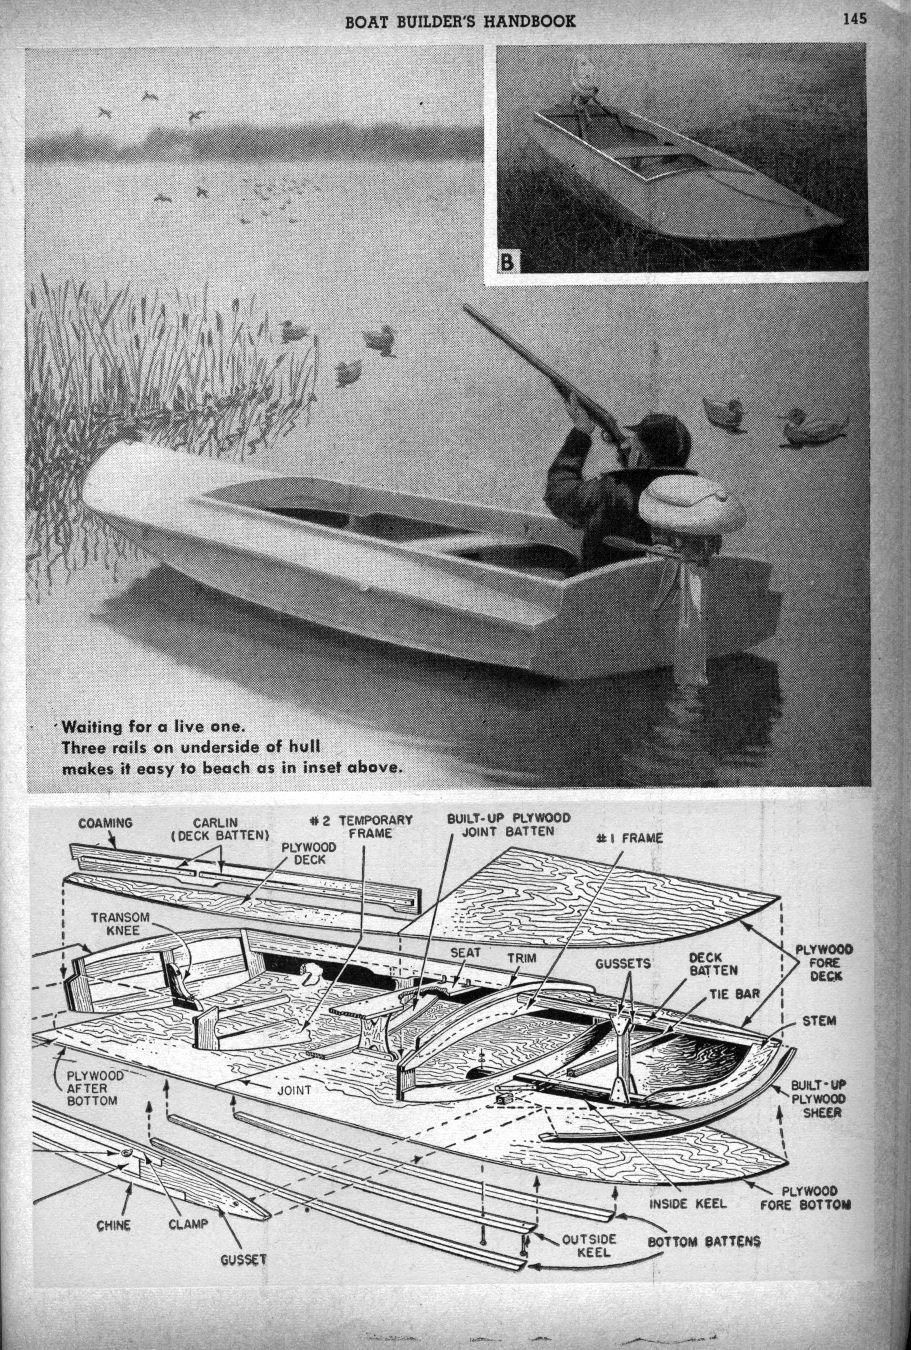 Woodtoyboatplans Boat Plans Free Boat Plans Plywood Boat Plans